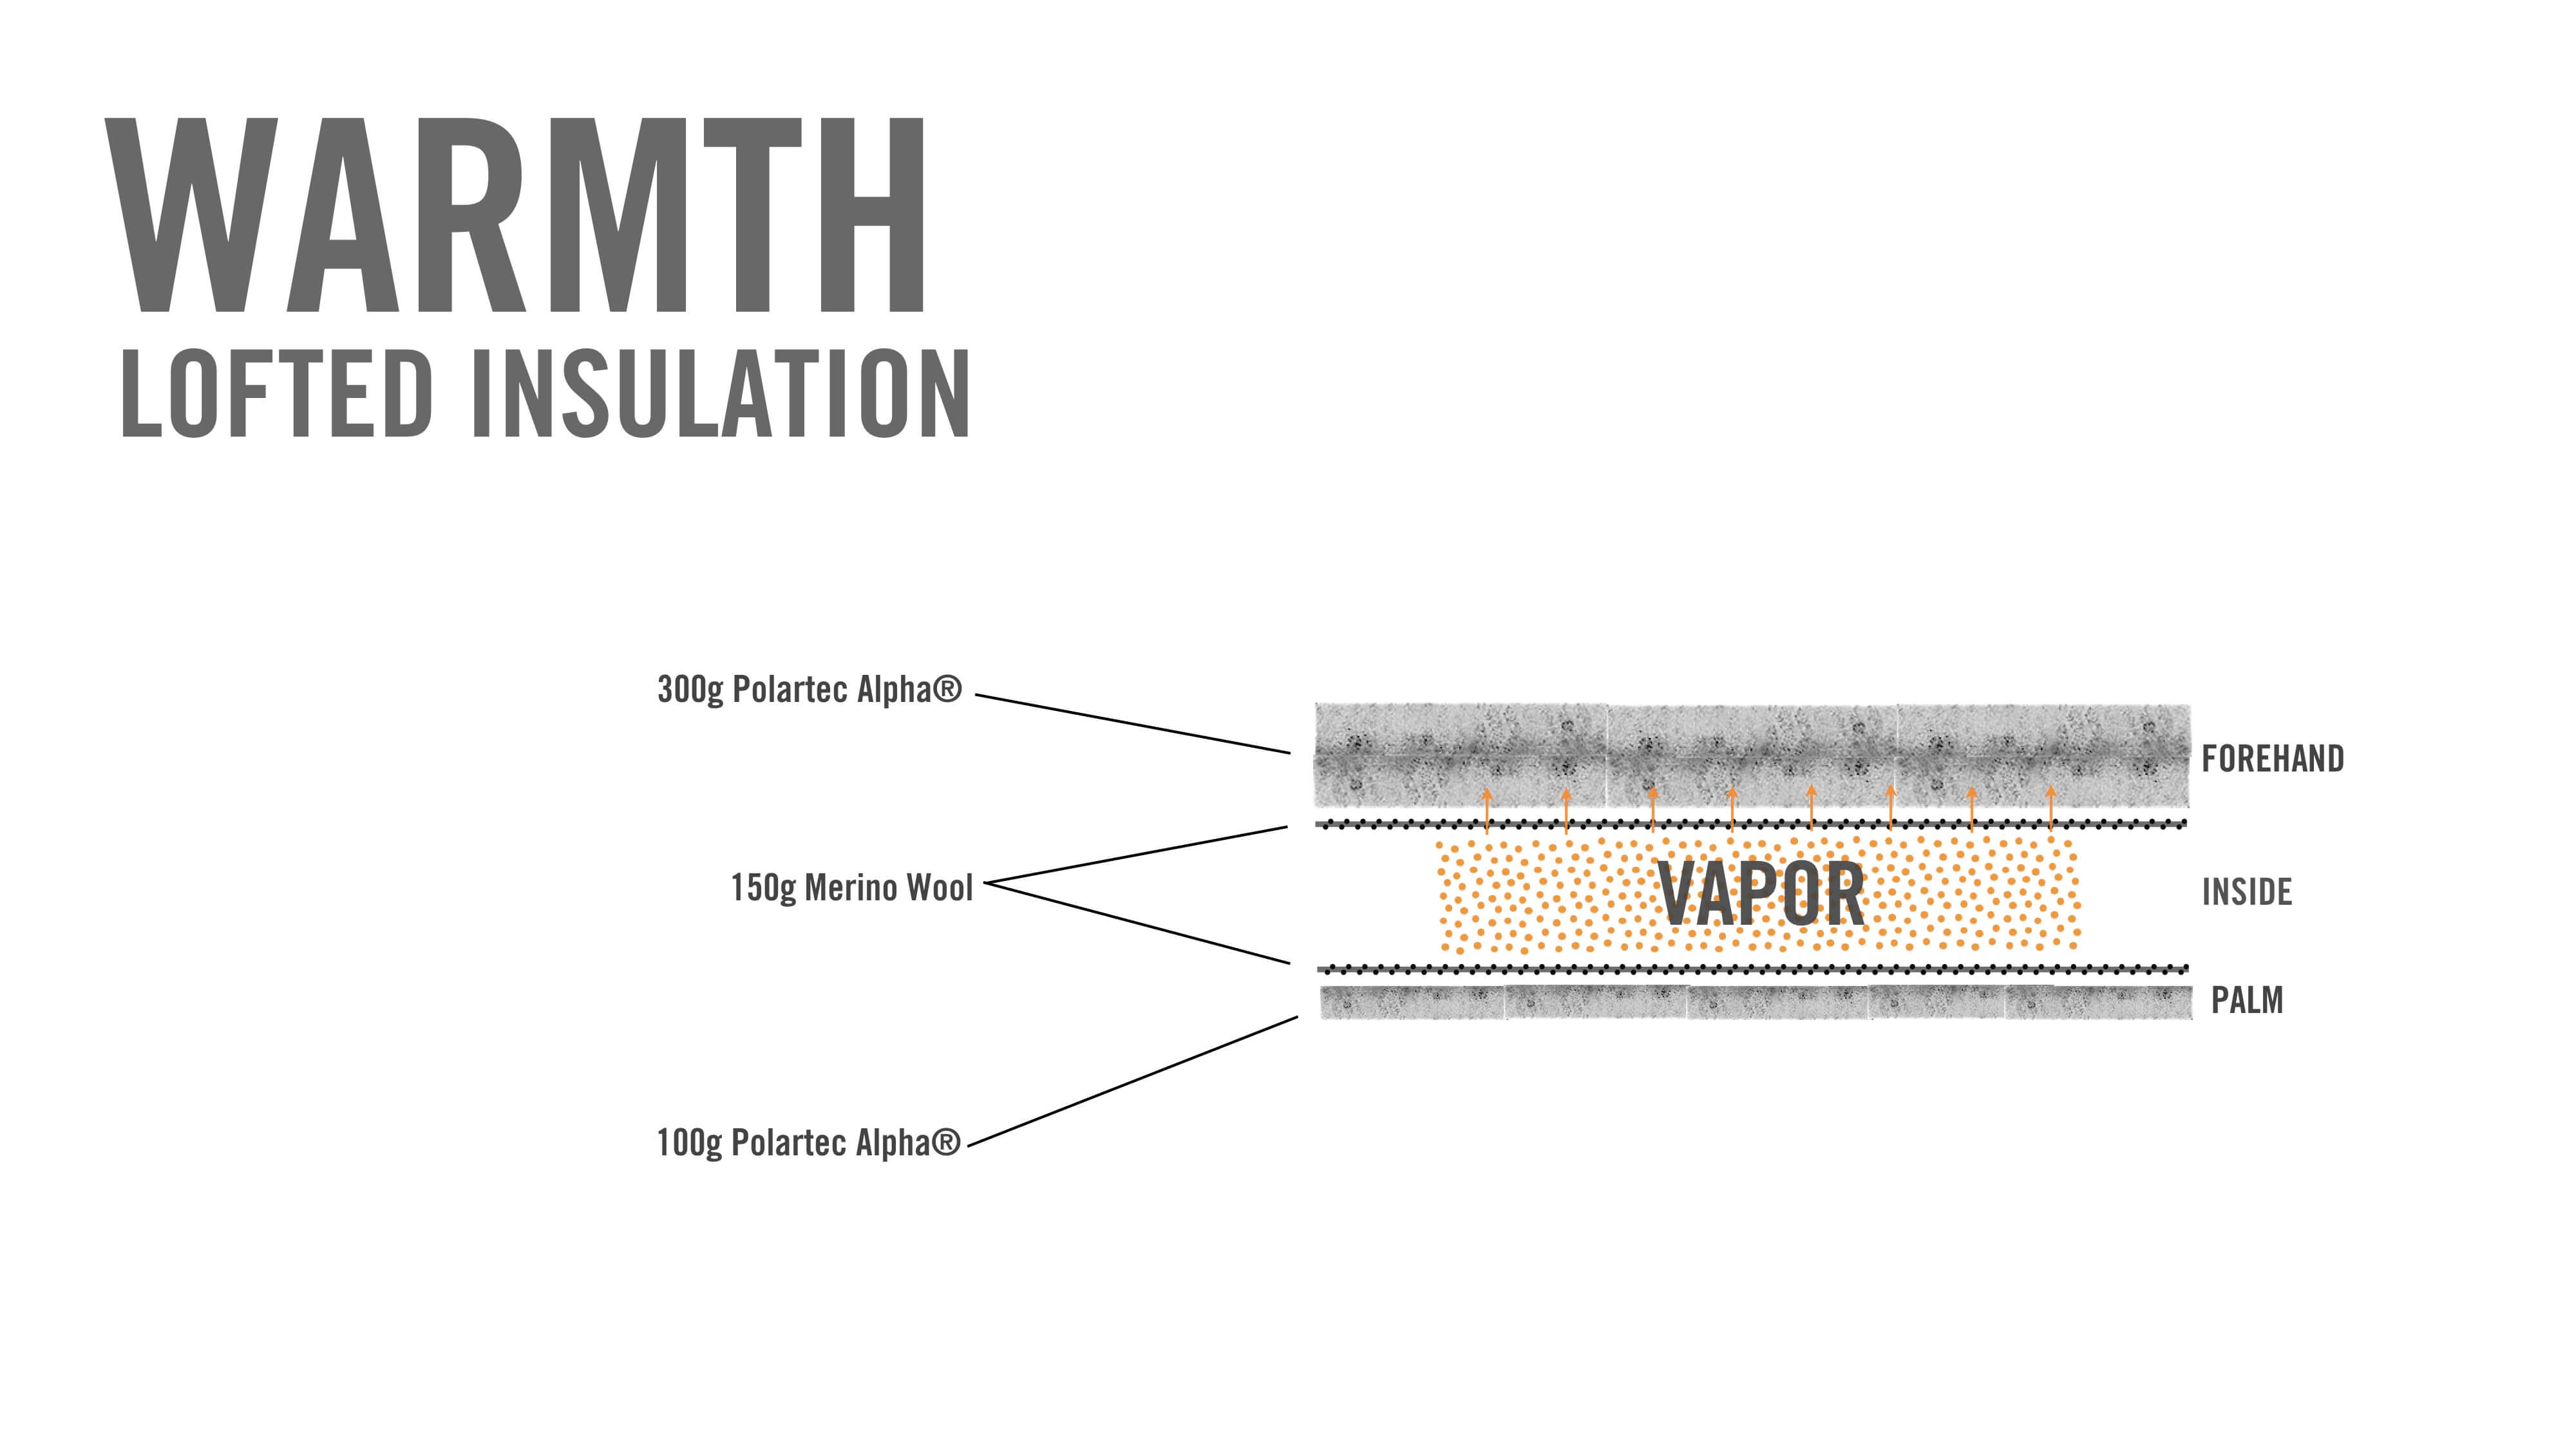 Warmth - Lofted insulation - illustration of merino wool in between 2 layers of Polartec Alpha insulation